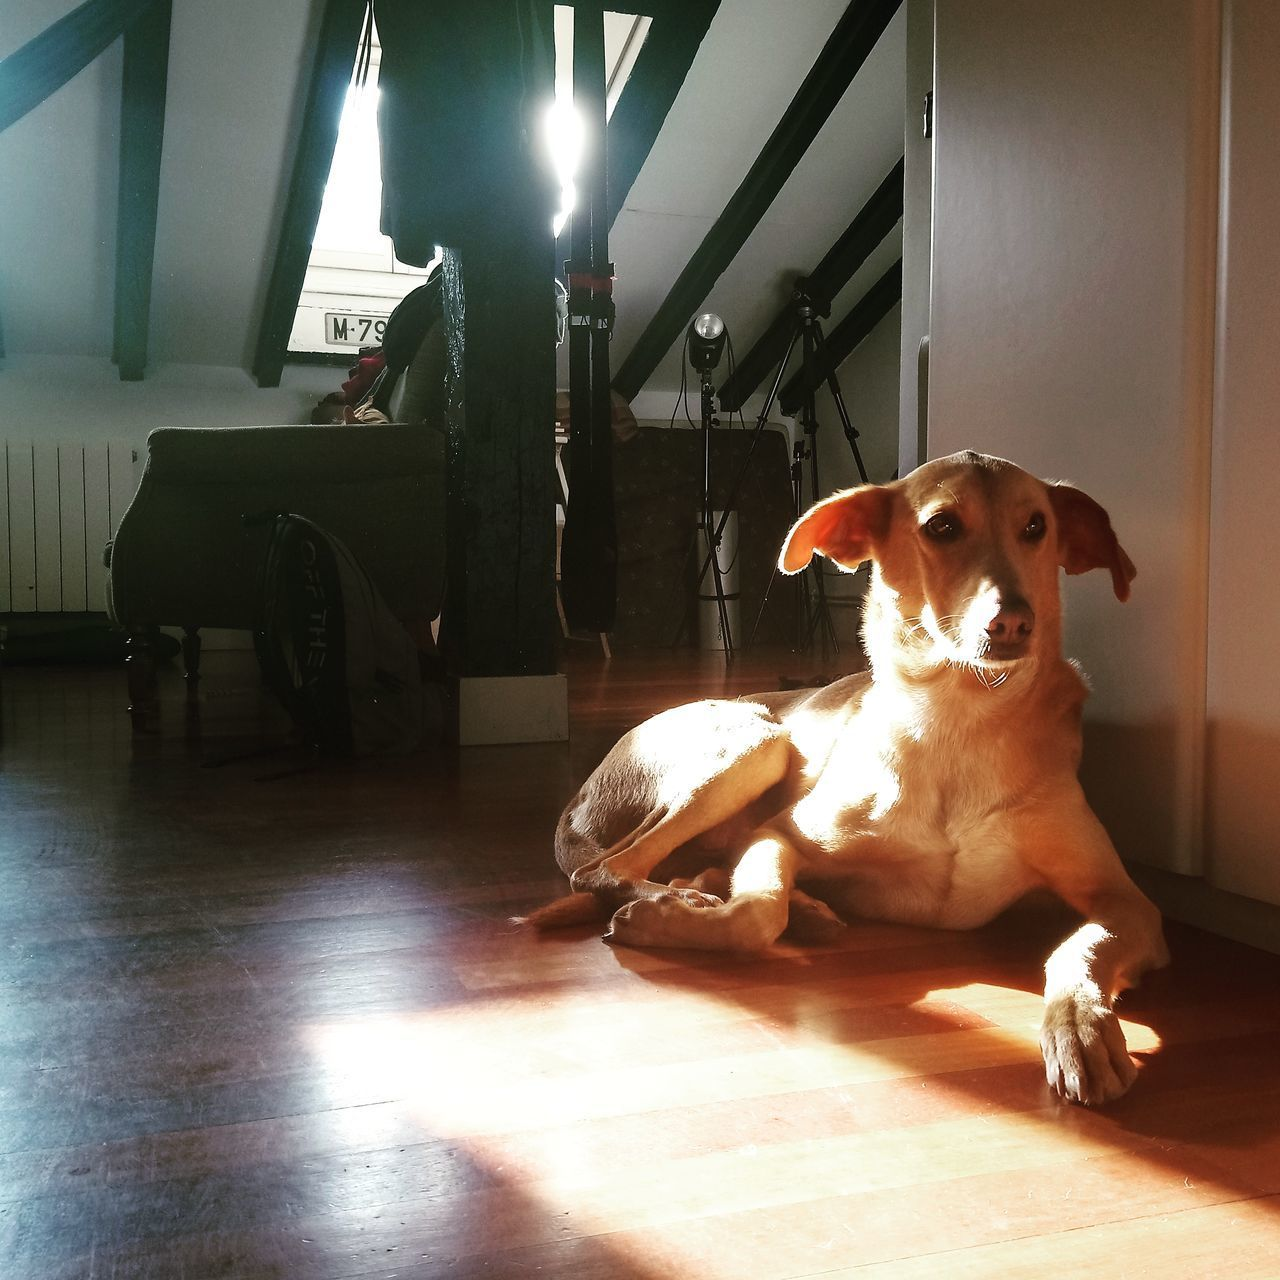 VIEW OF DOG SITTING ON FLOOR